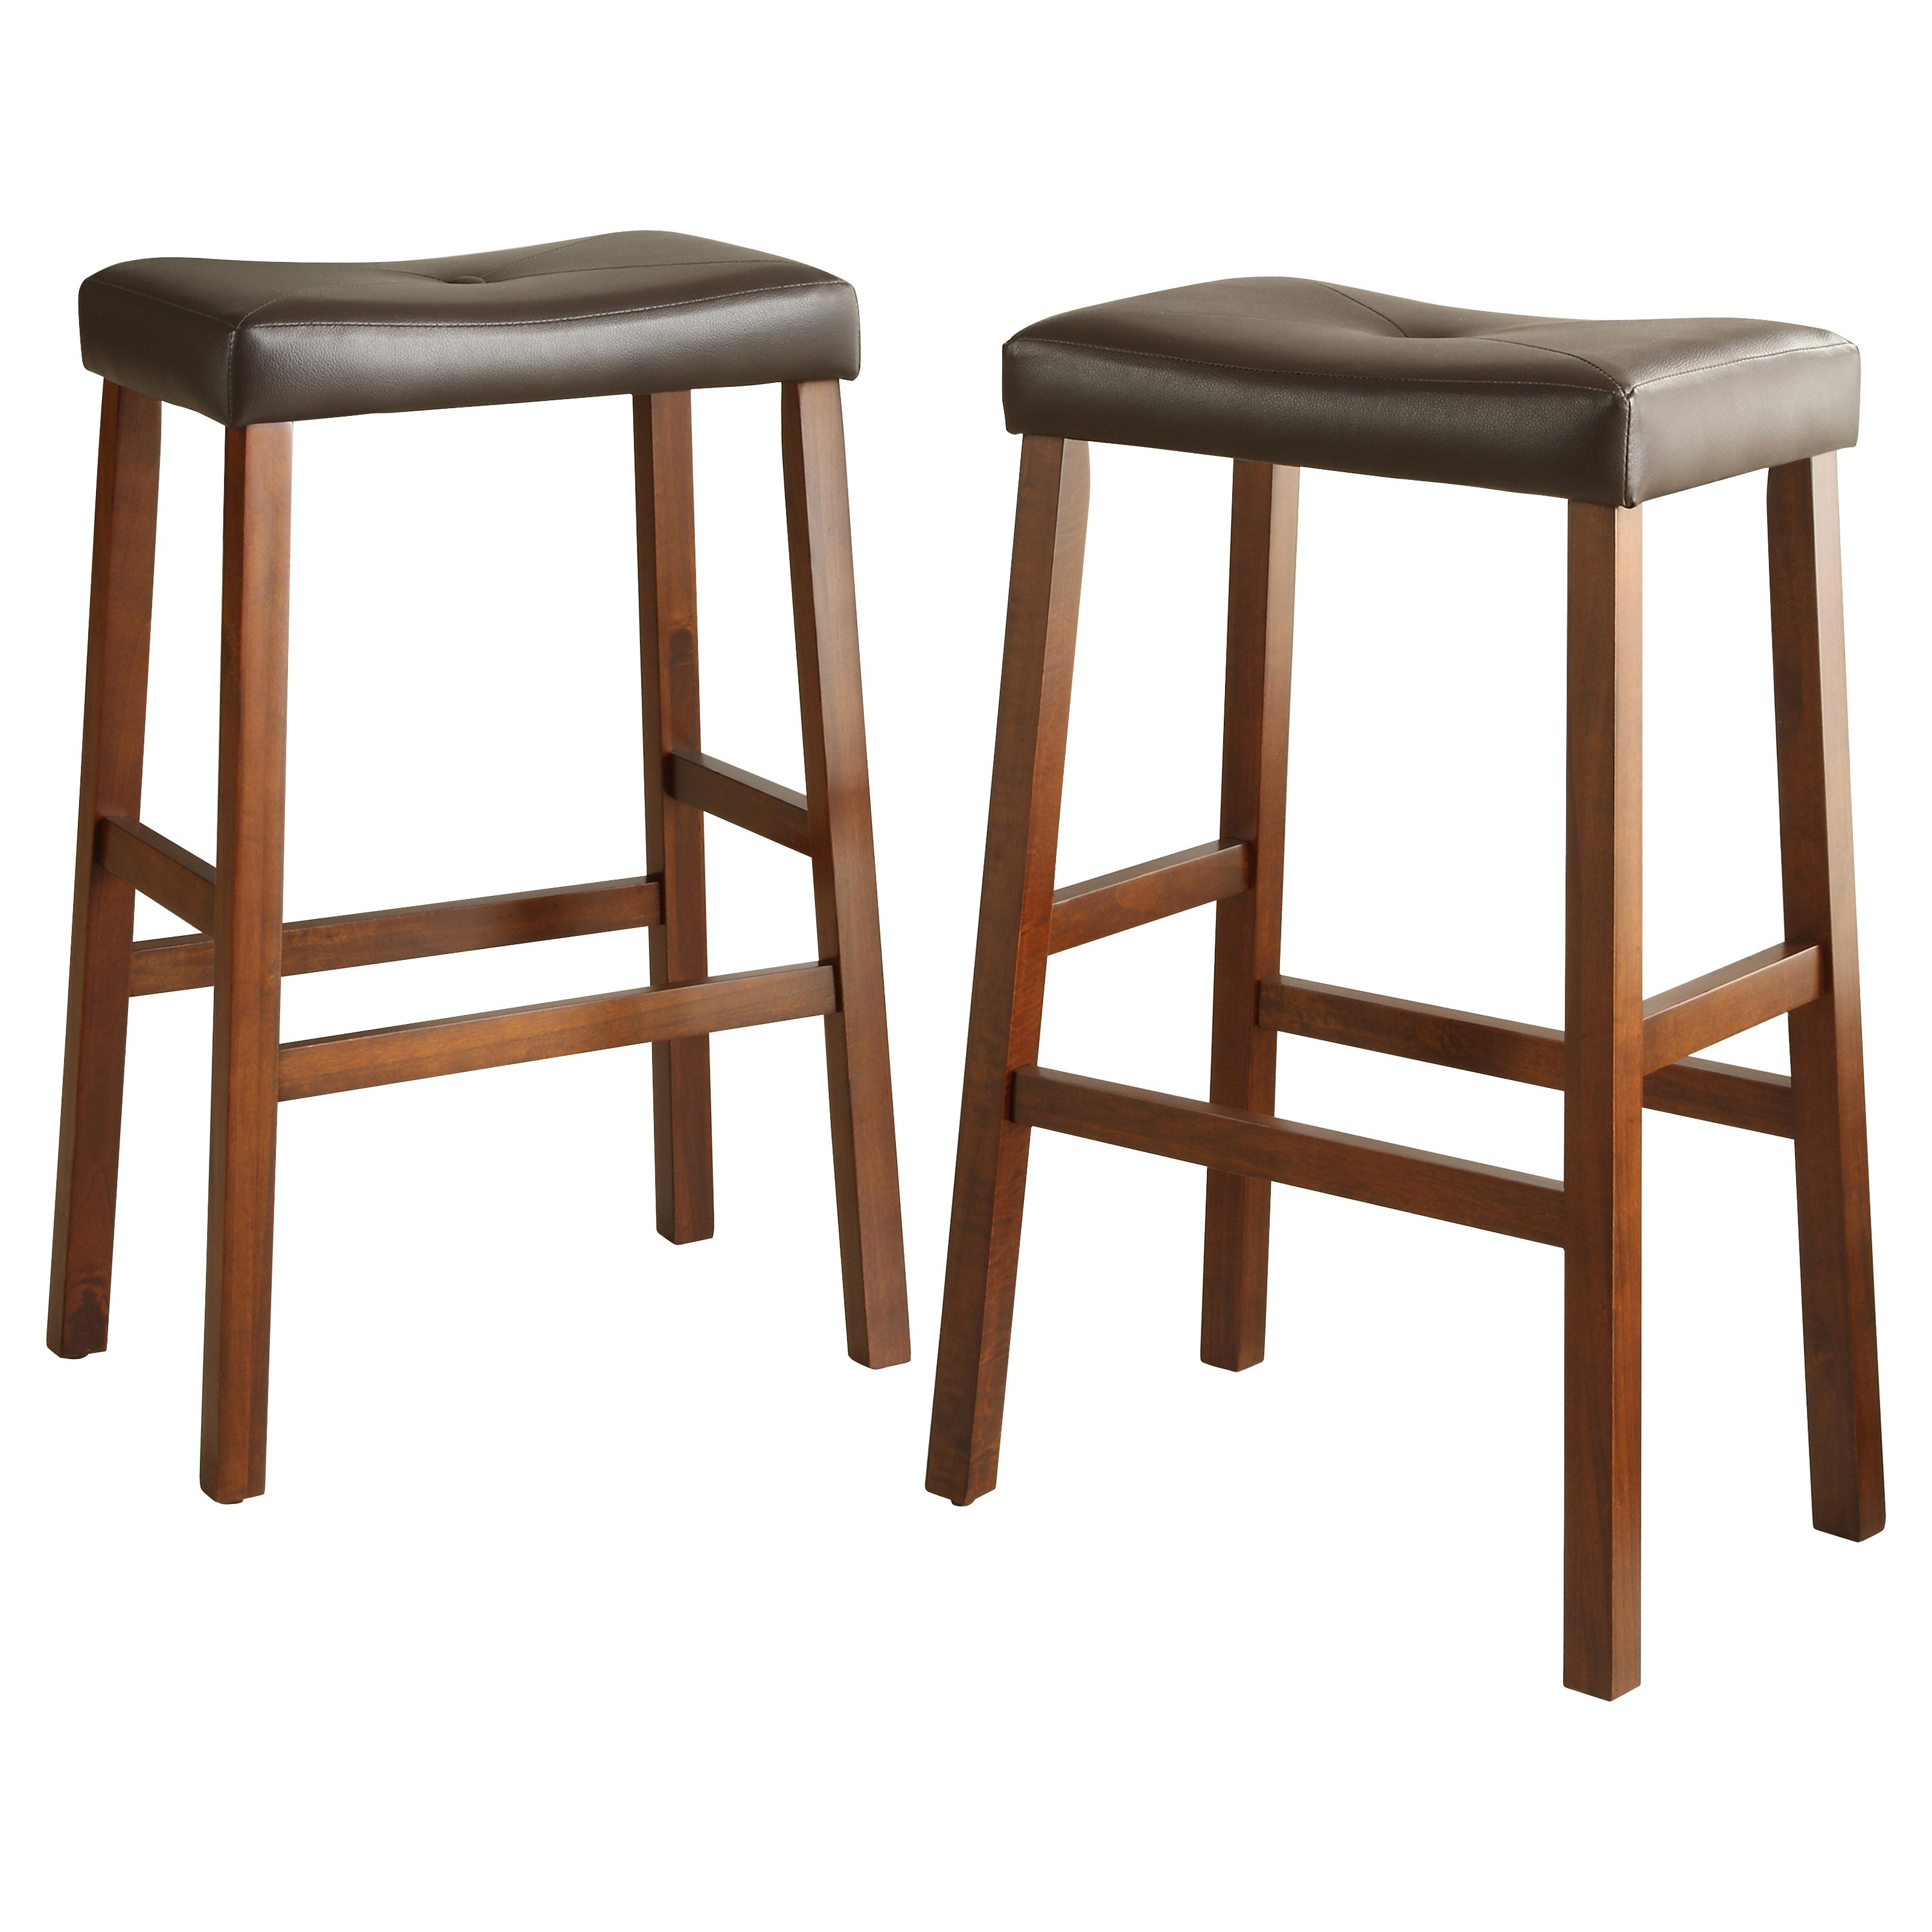 Weston Home Scottsdale Saddle Bar Stool Cherry - Set of 2